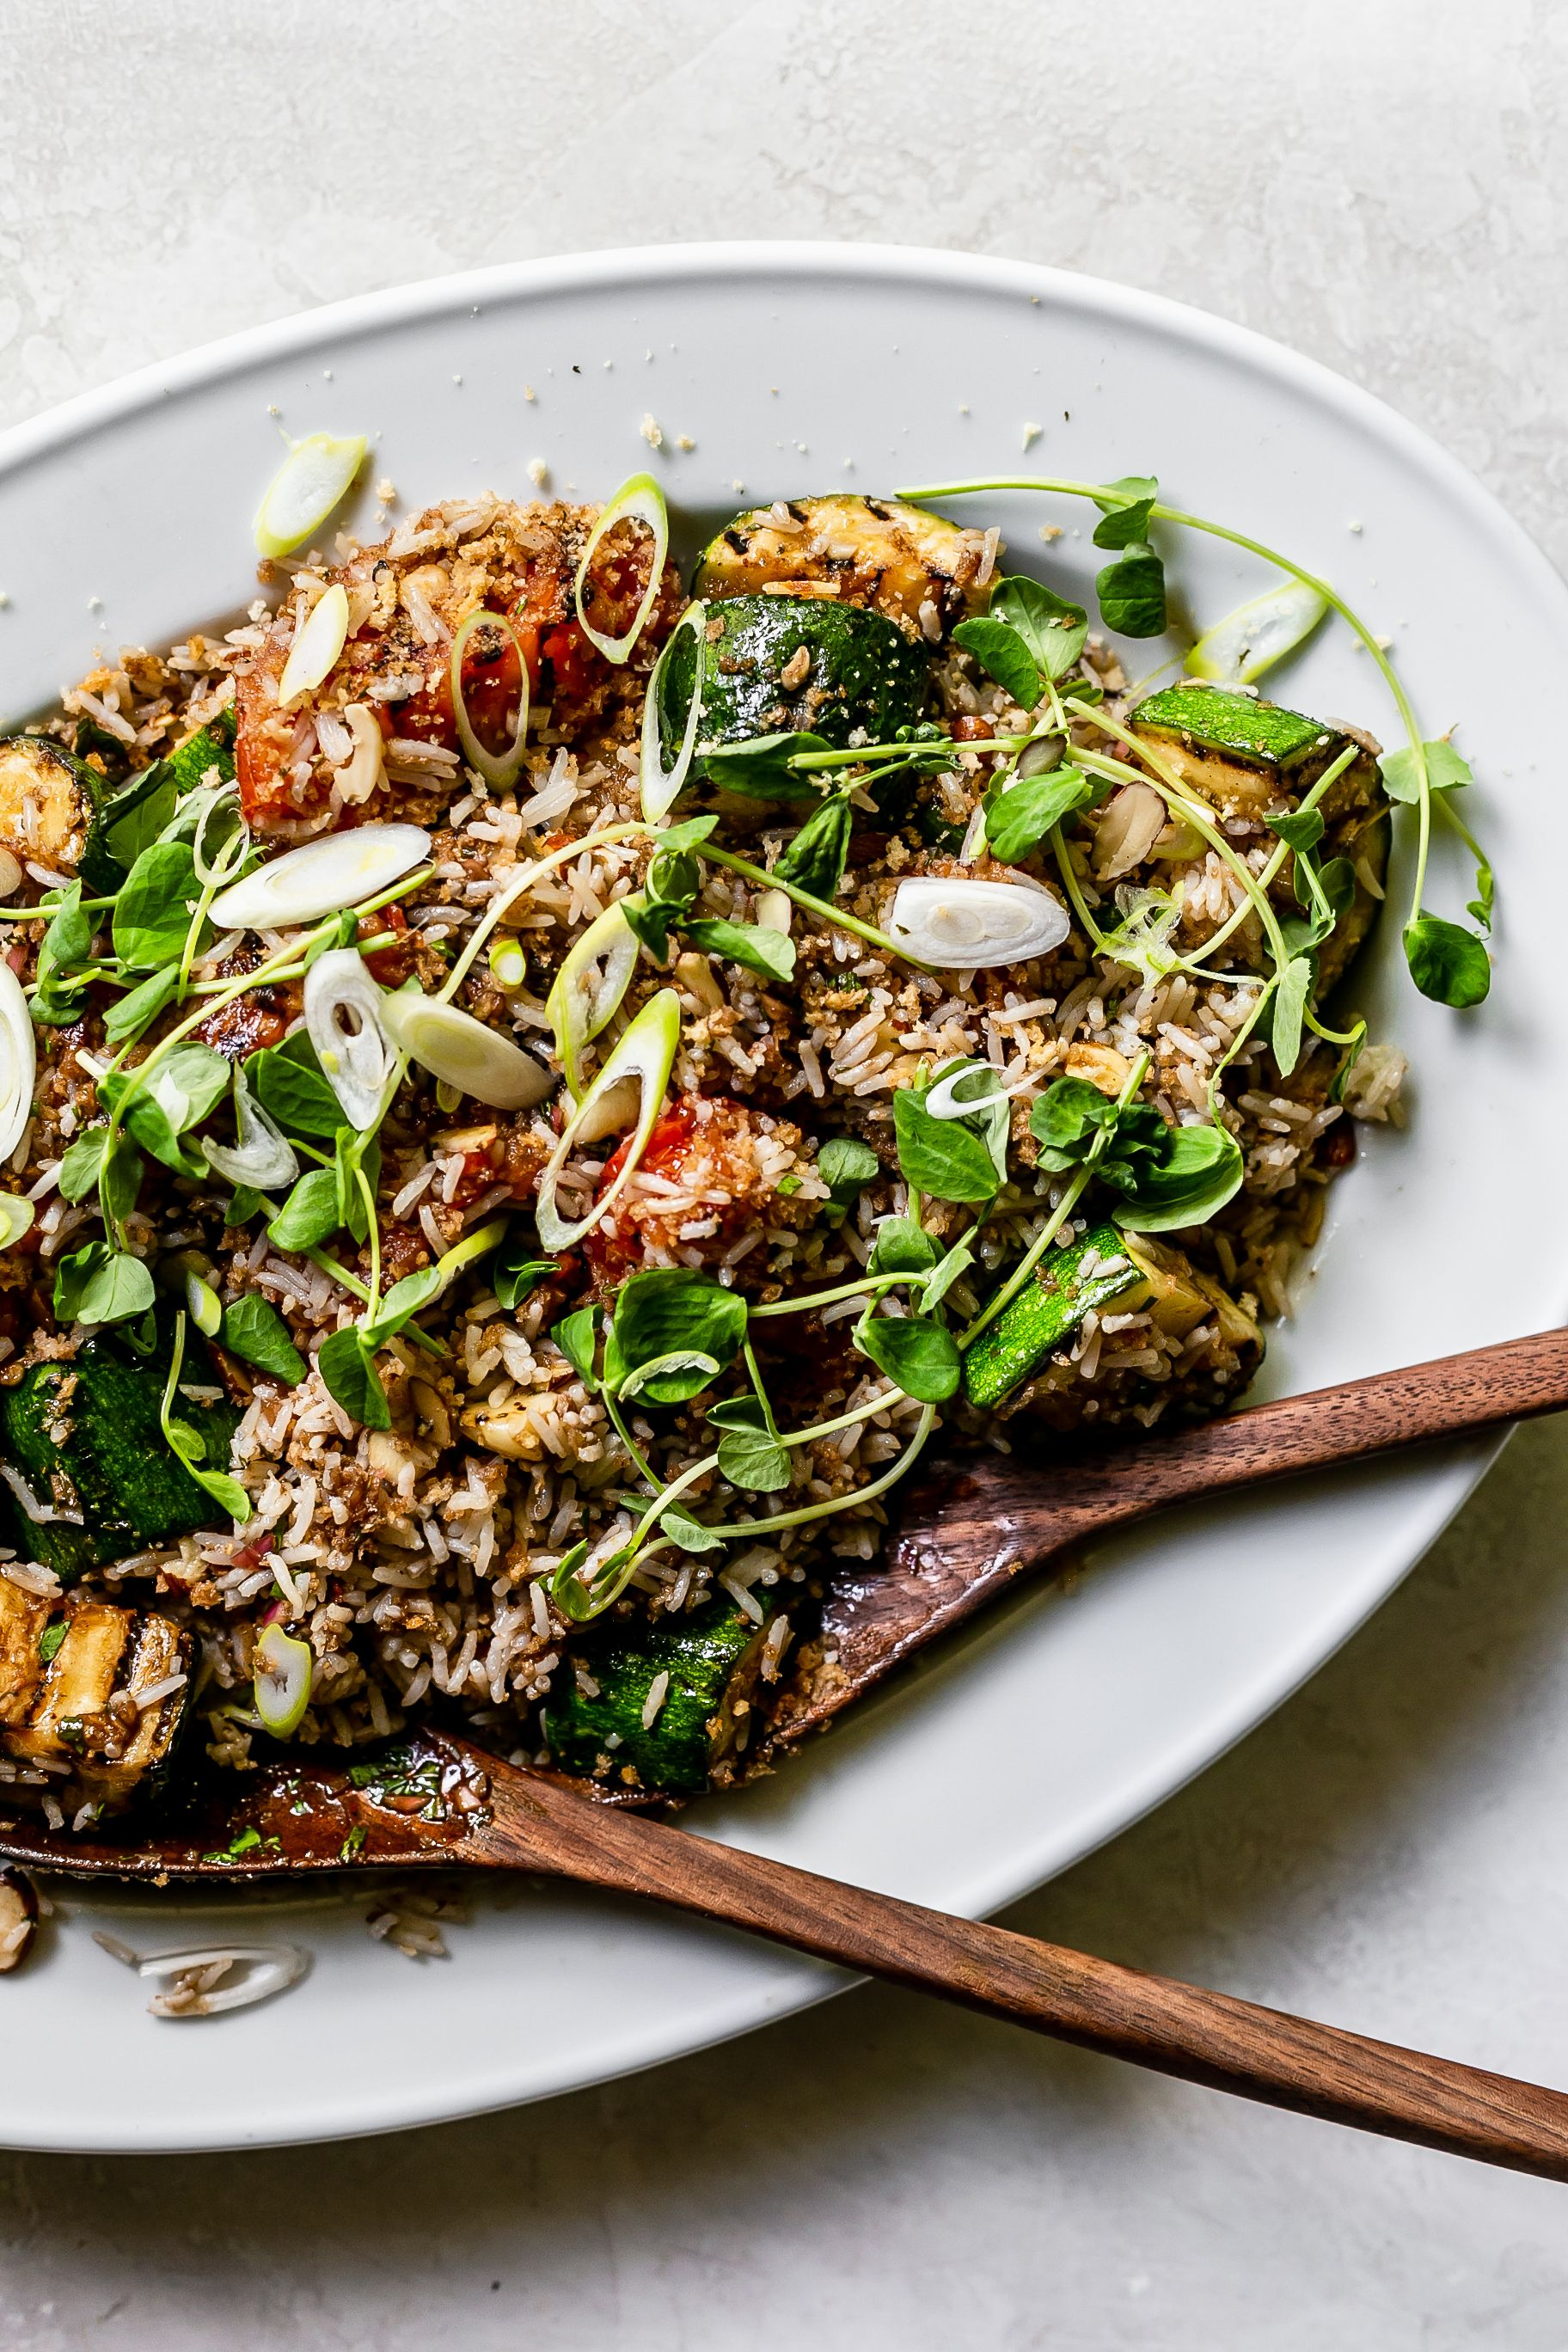 Herby Rice Salad with Roasted Vegetables